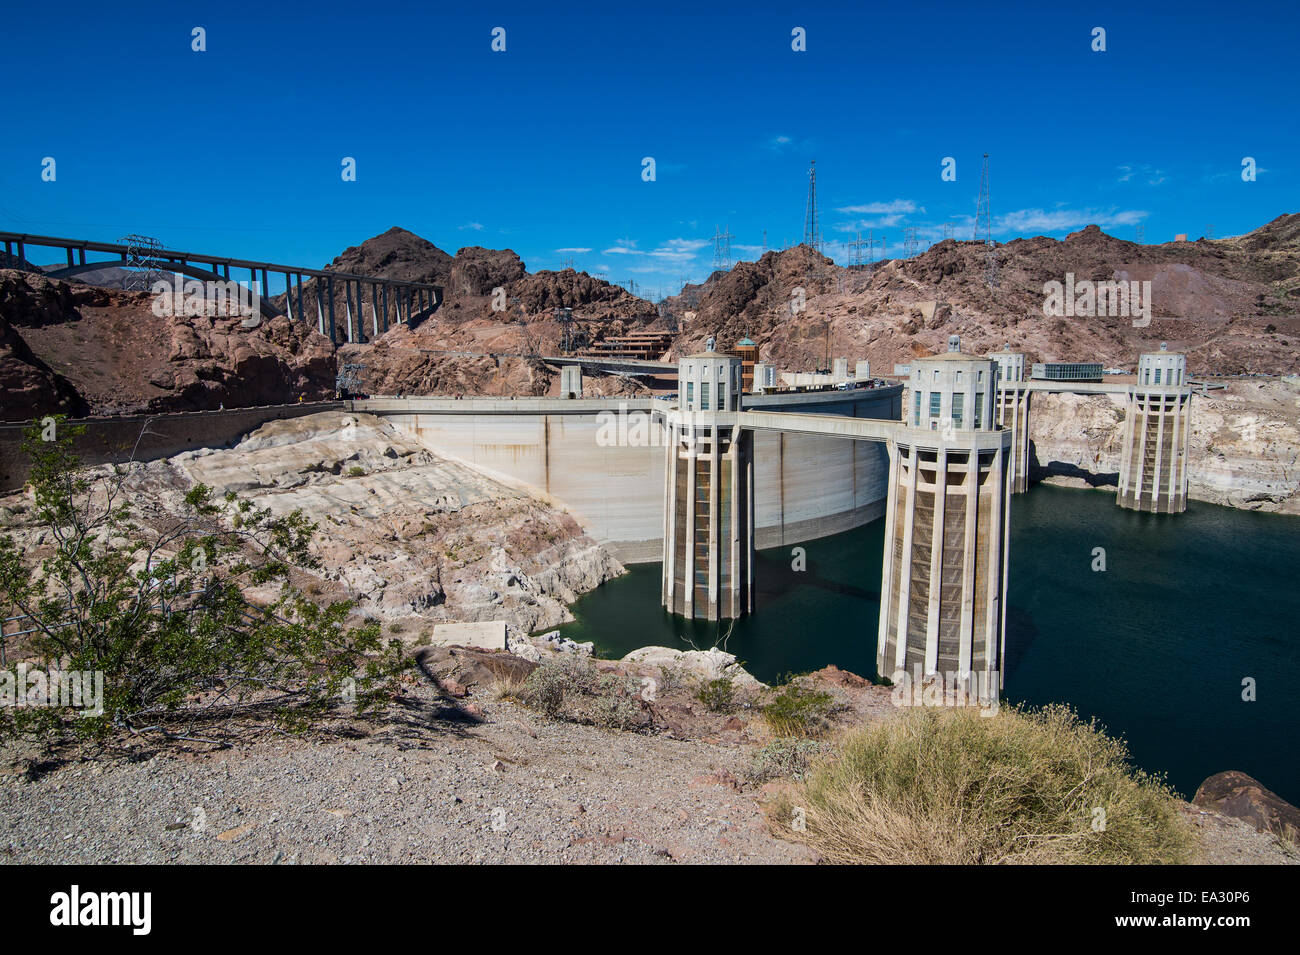 Le Barrage Hoover, Nevada, États-Unis d'Amérique, Amérique du Nord Photo Stock